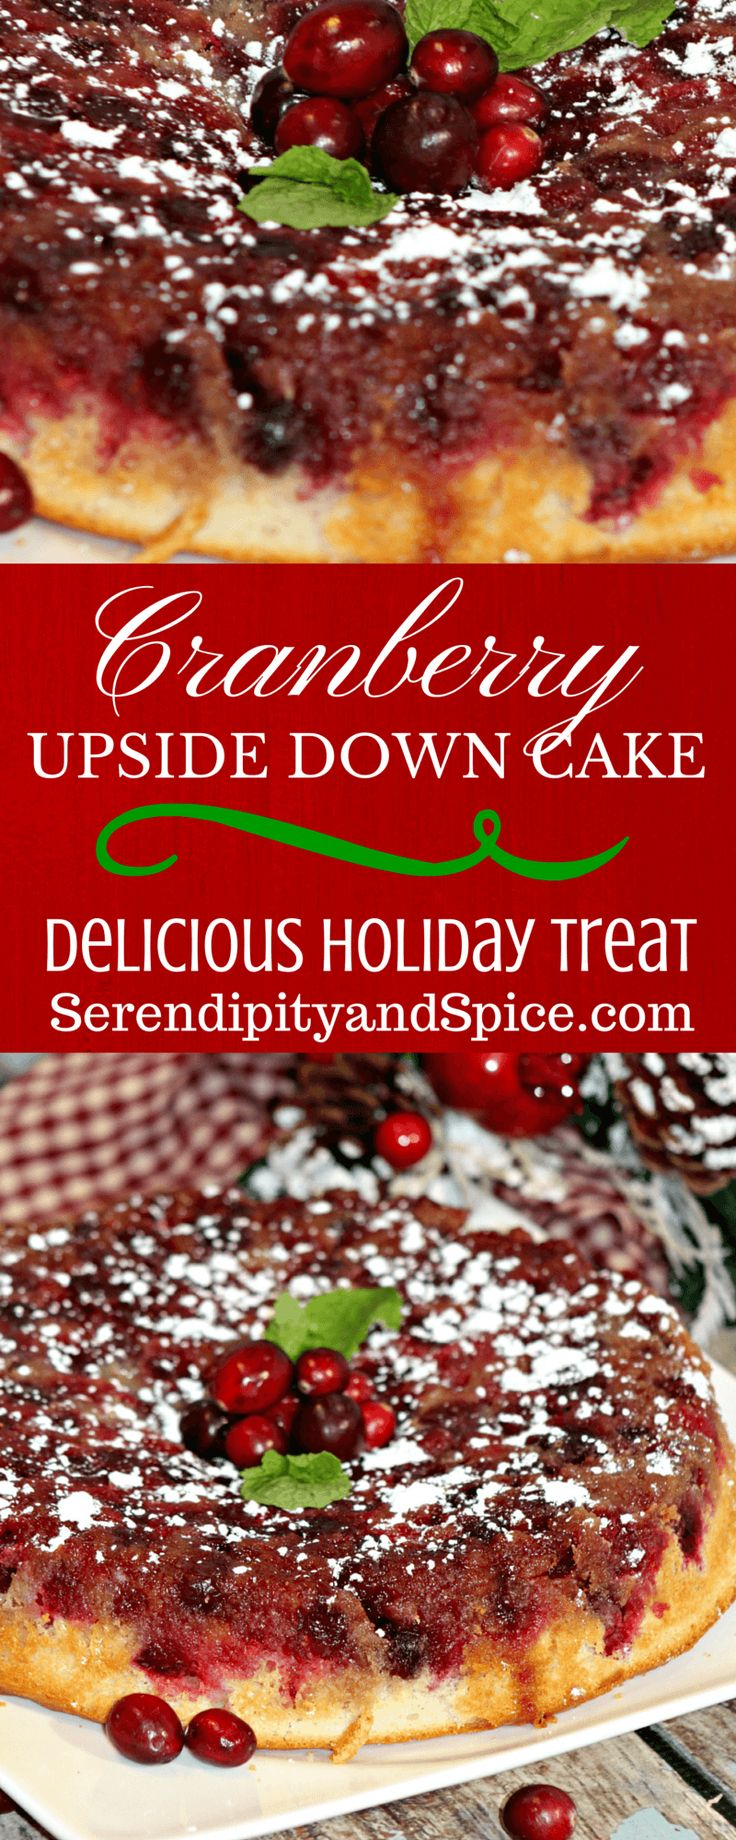 Cranberry Upside Down Cake- the most delicious Christmas dessert treat you'll make!